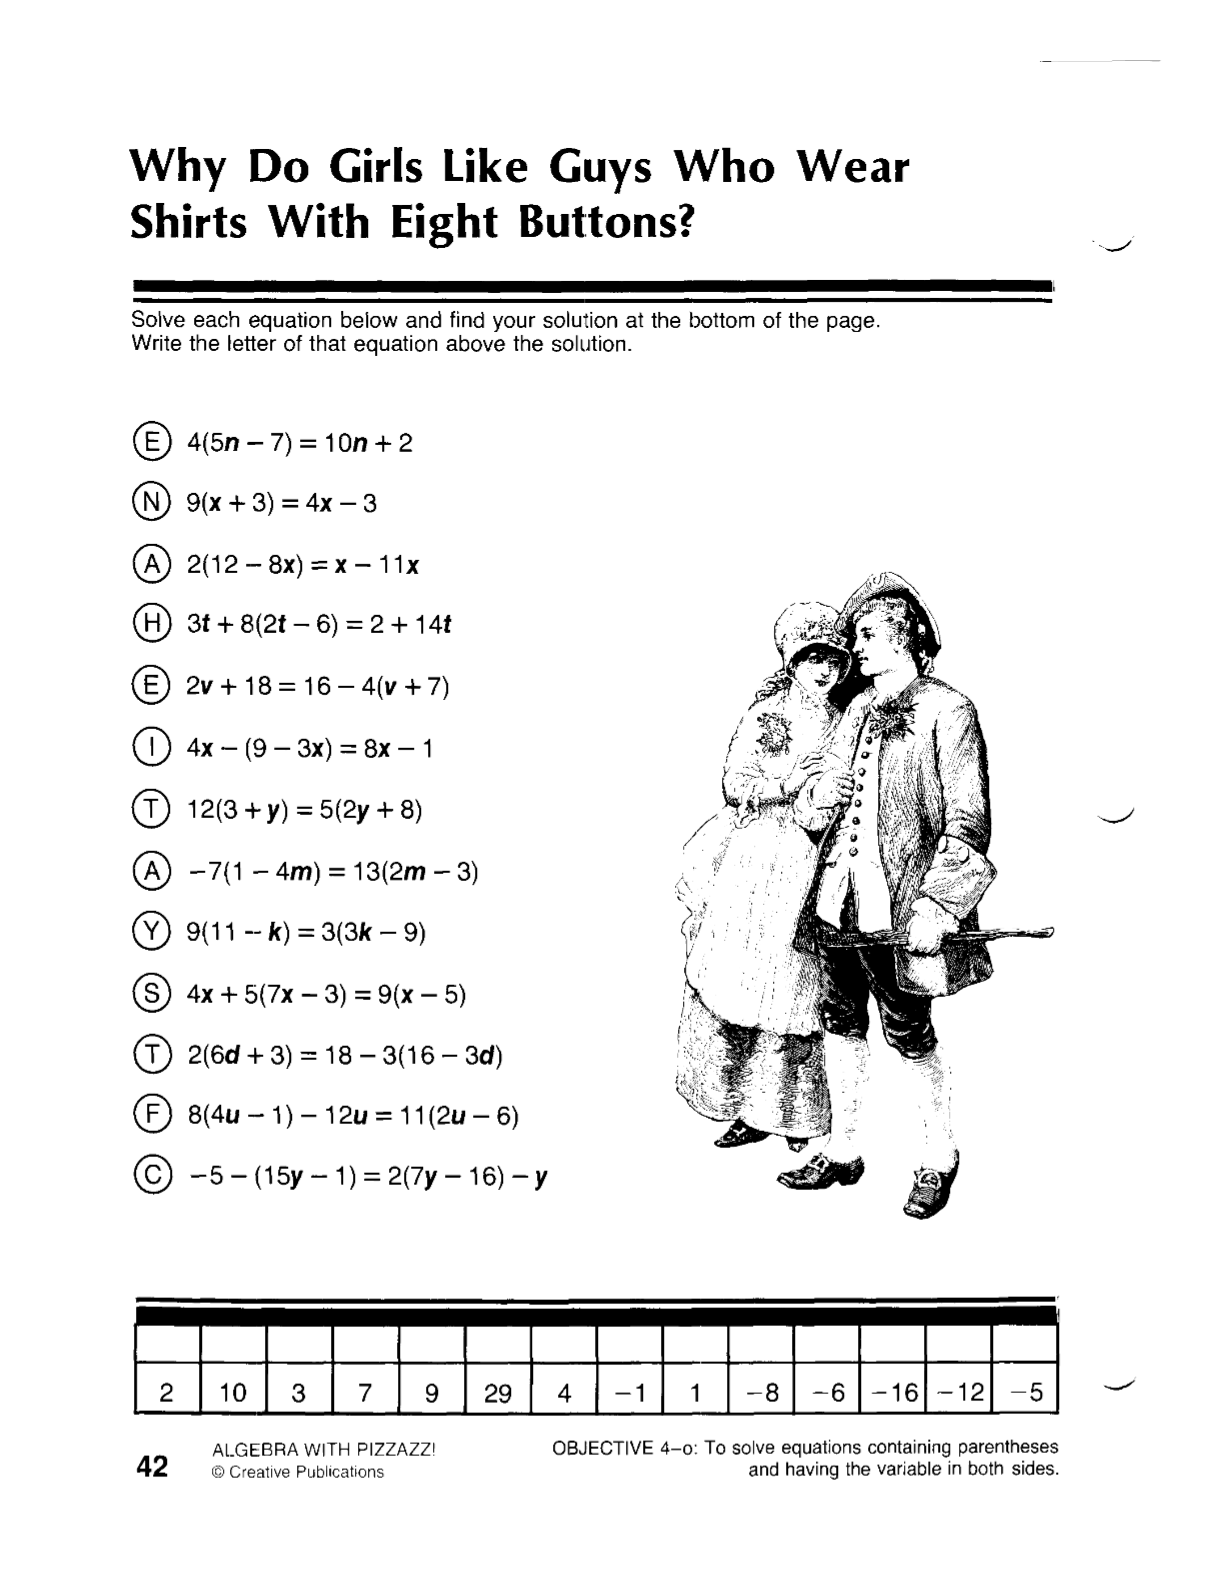 Free Worksheet Literal Equations Worksheets algebra i mr g 818 activity 33 by design 1 hmh textbook p 9 26 819 multi step equations worksheet 820 variables on both sides 1